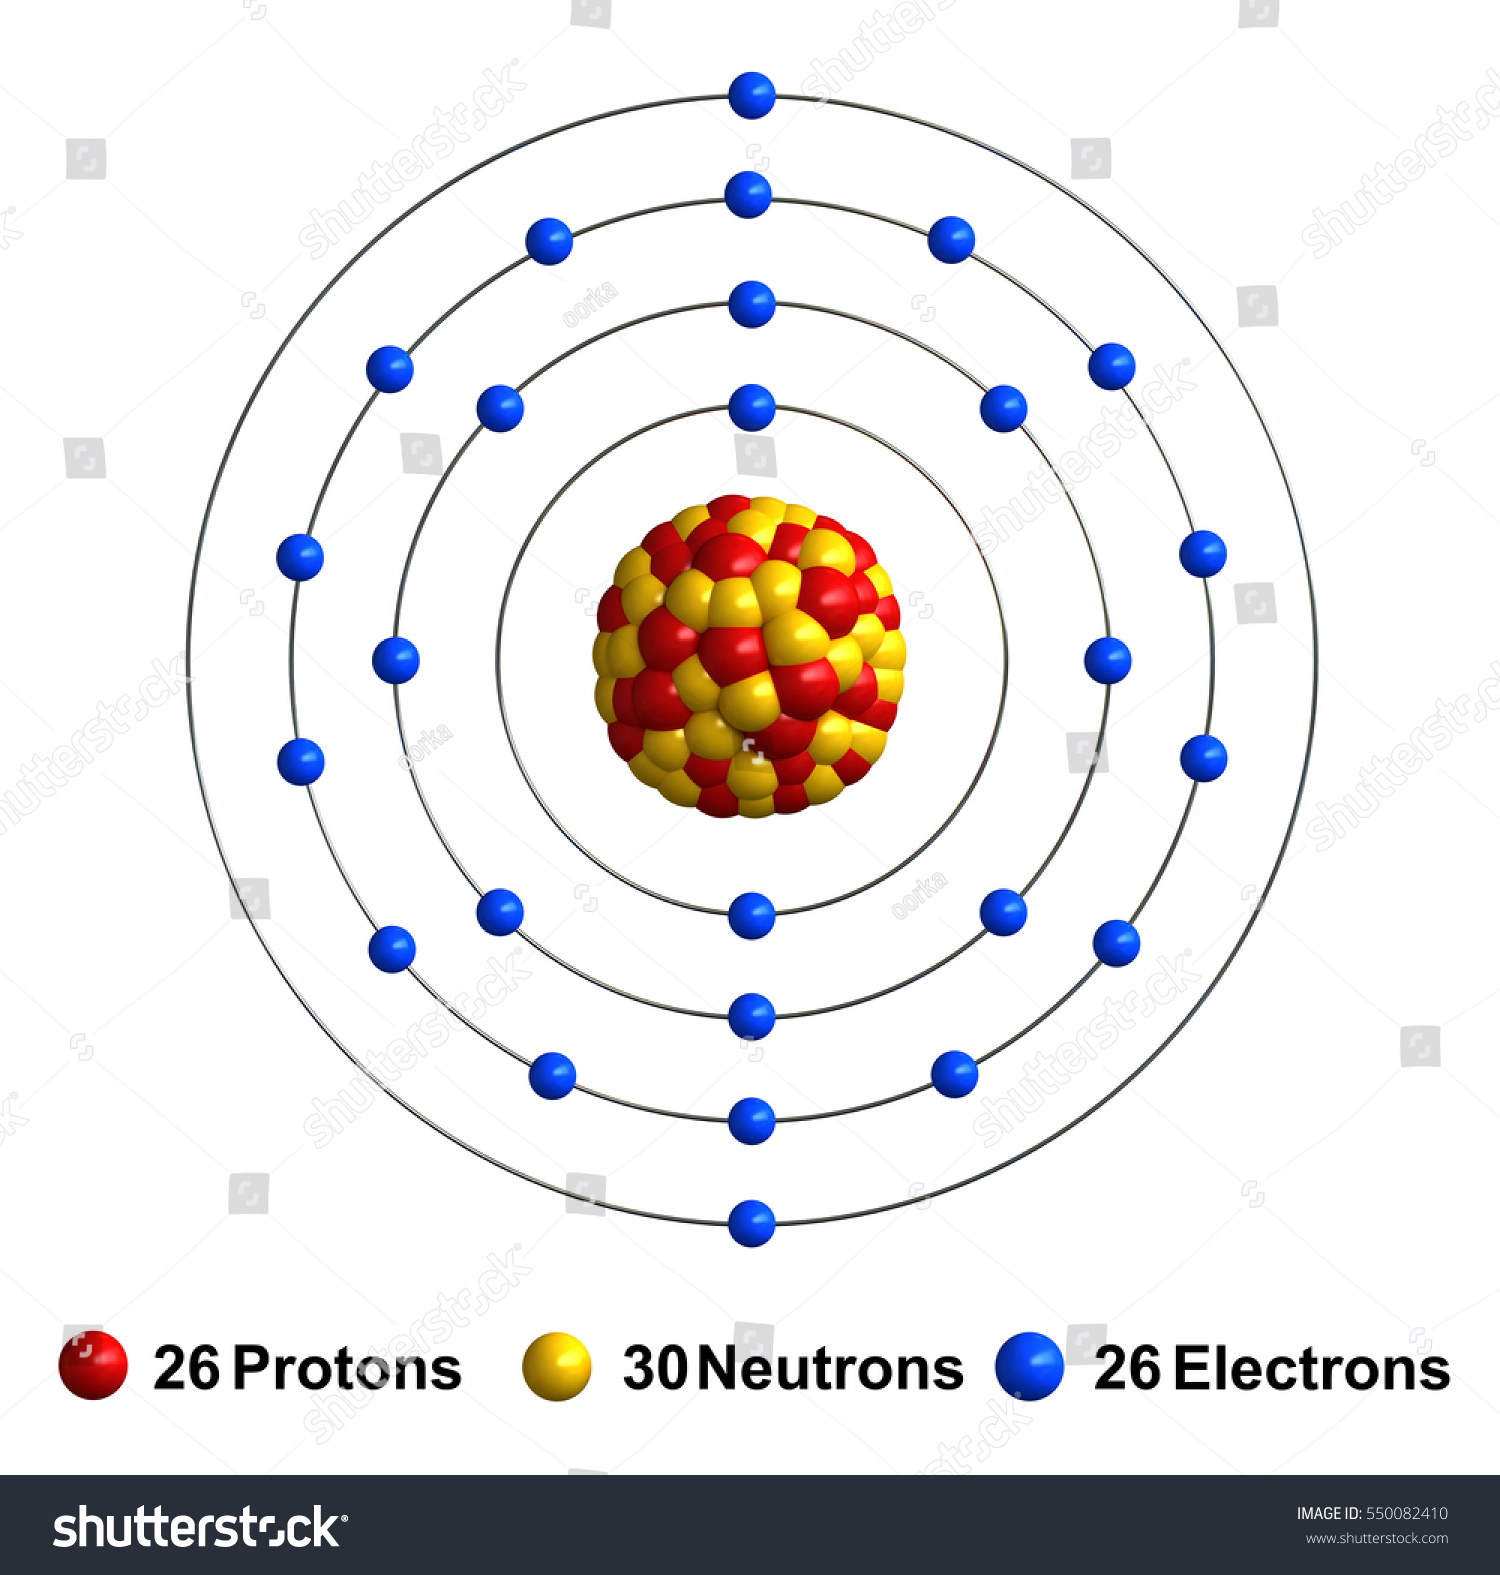 Atom Diagram Of Iron Explore Schematic Wiring Oxygen Structure Stock Photo 3 D Render Isolated Illustration 550082410 Rh Shutterstock Com Chlorine